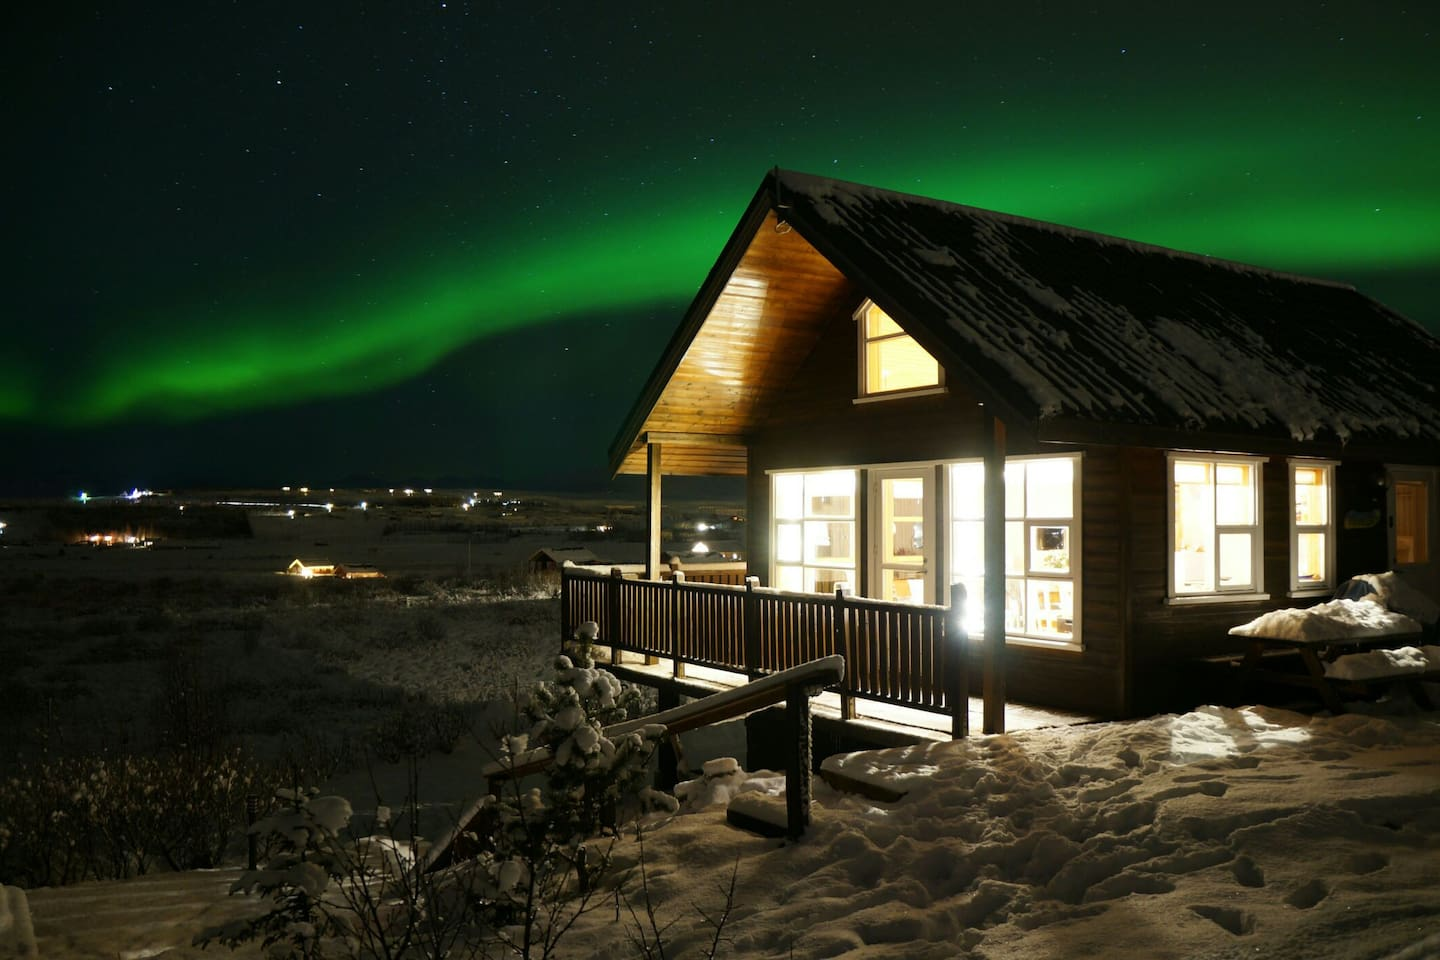 The house underneath the northern lights